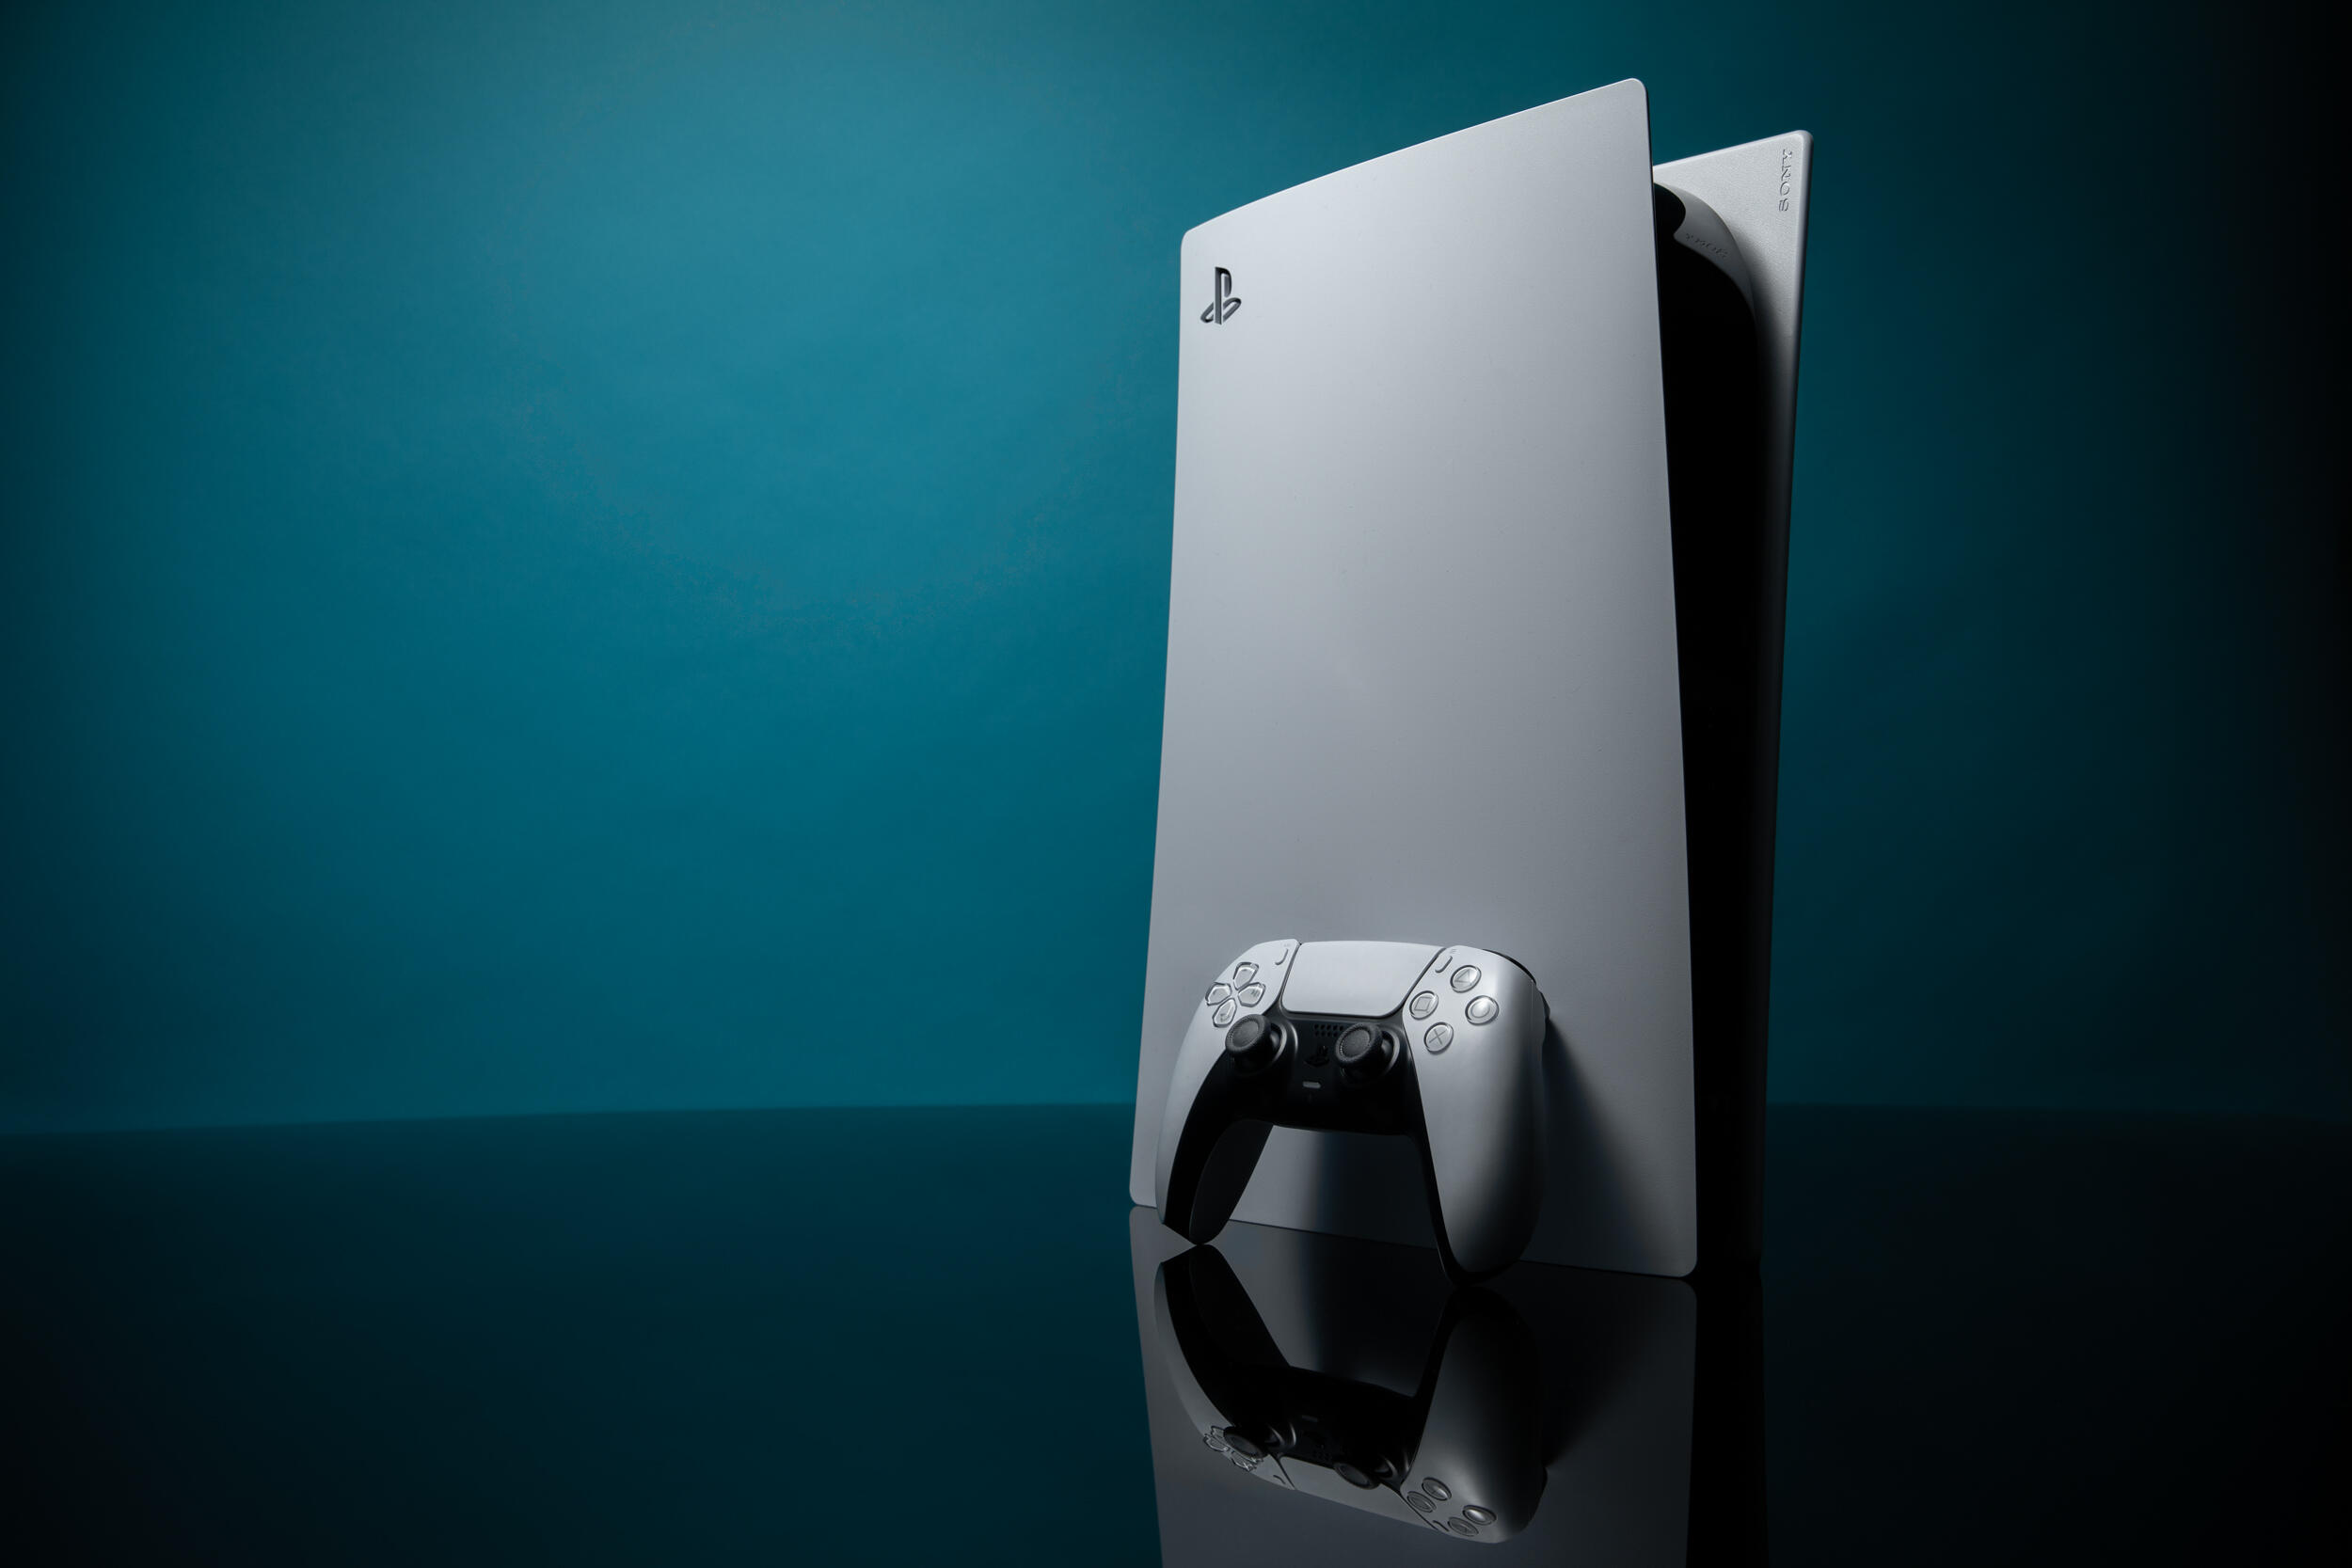 ps5-and-controller-cropped-for-door.png